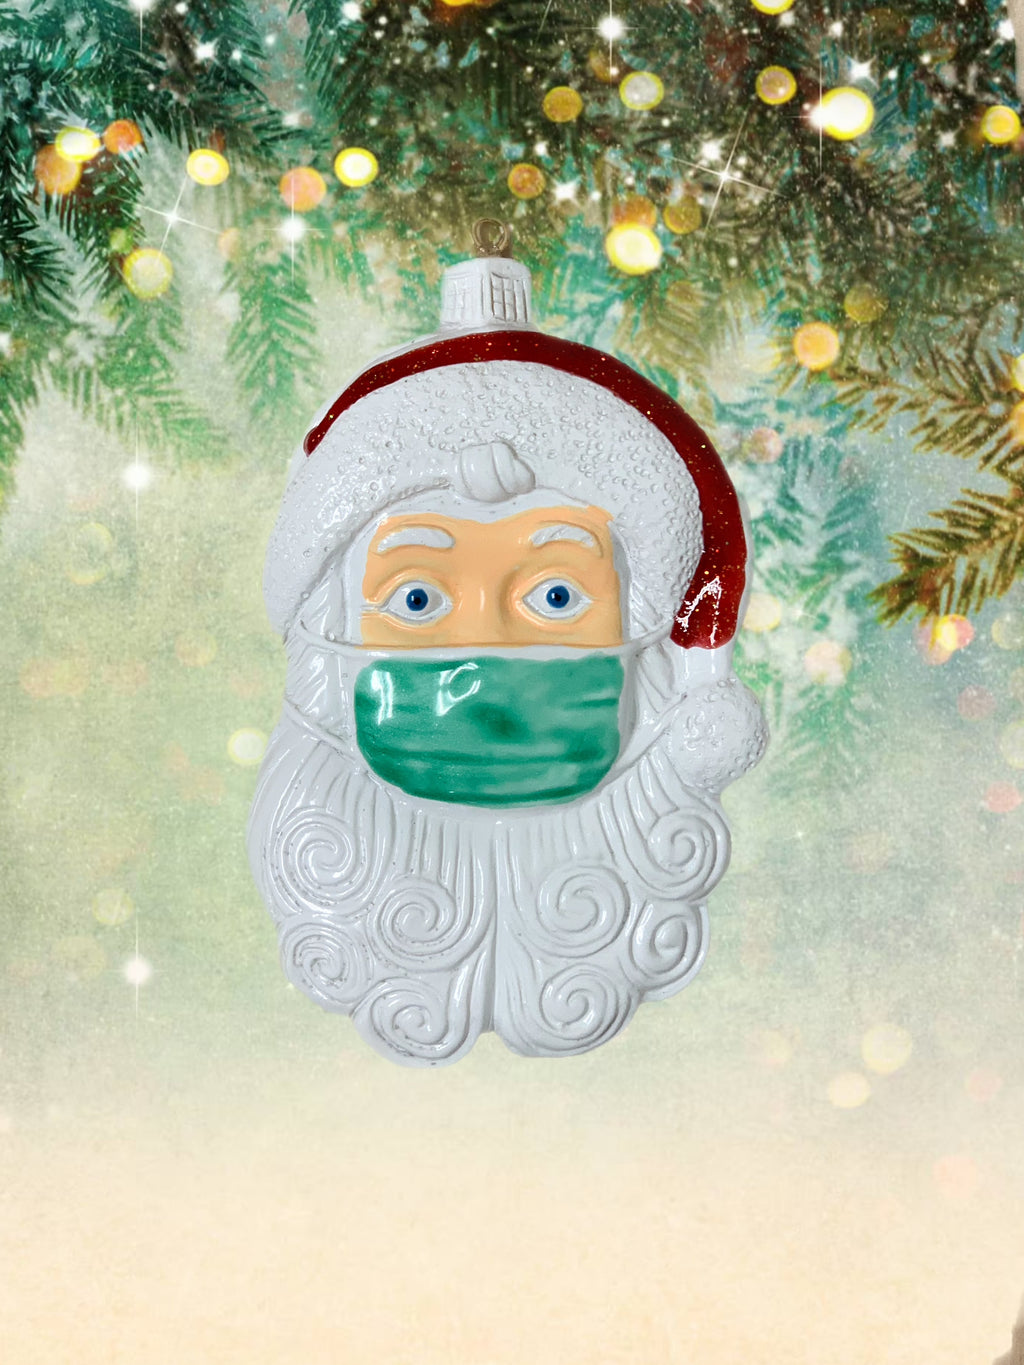 Santa Christmas Facemask Ornament 2020